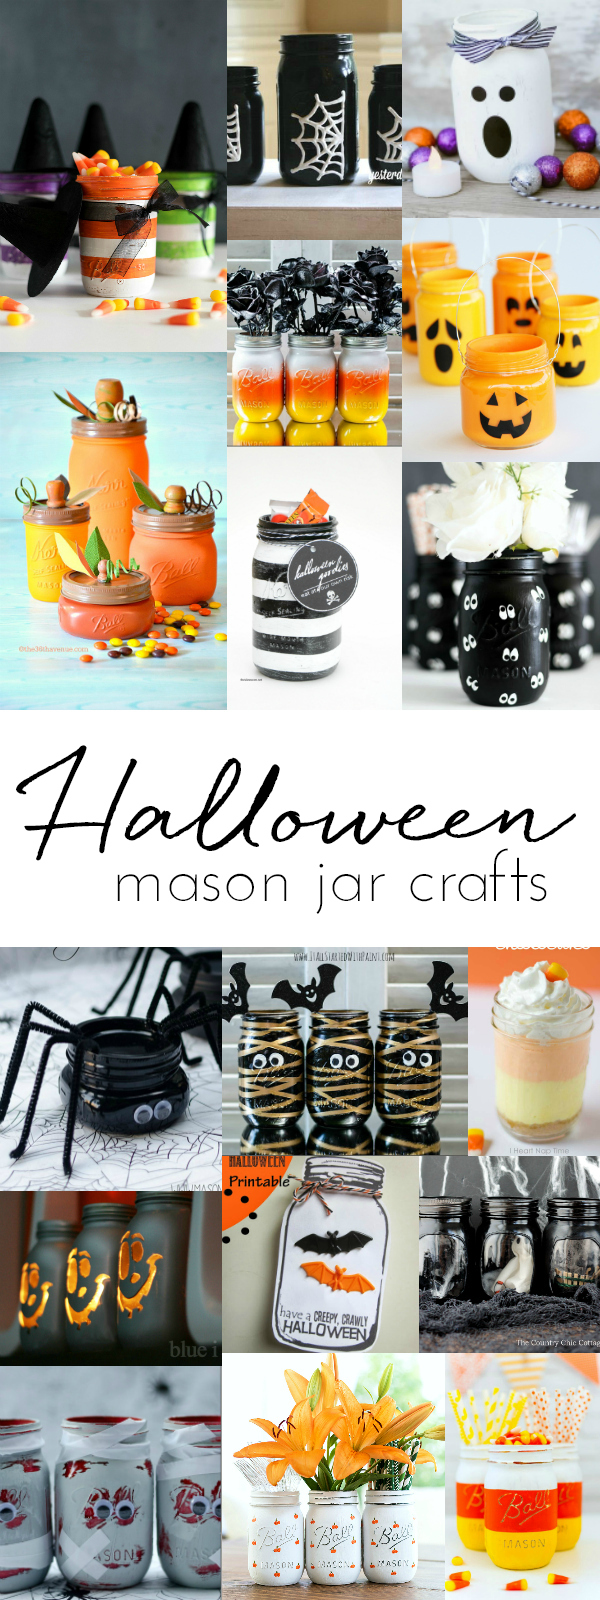 Halloween Crafts with Mason Jars - Mason Jar Crafts for Halloween - Halloween Kids Craft Ideas